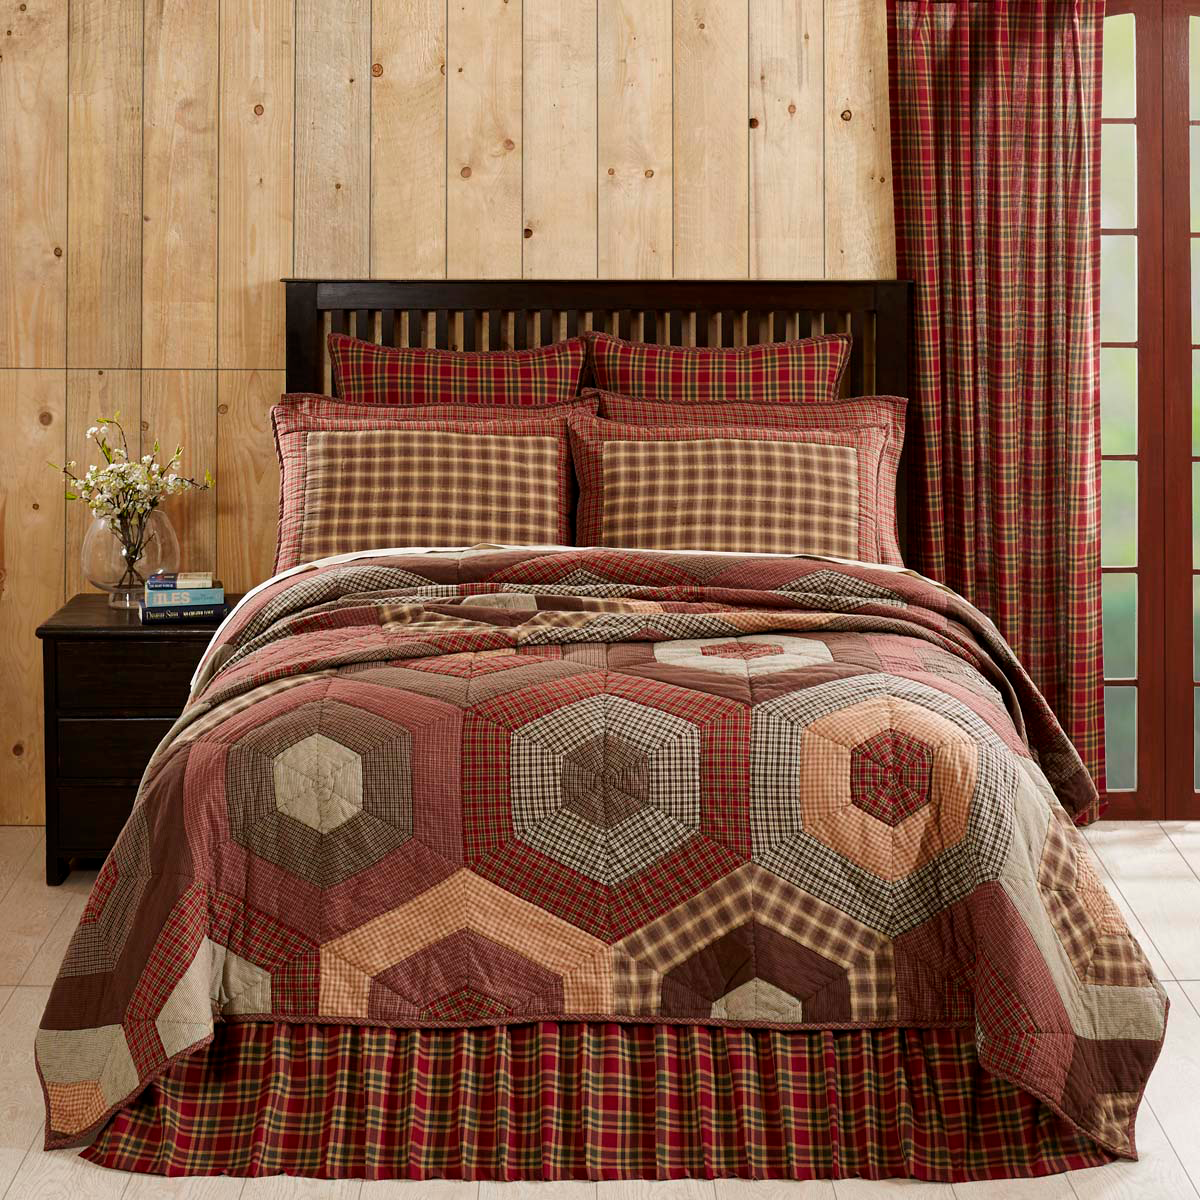 3-pc King GRAHAM Quilt and Shams Set -Crimson/Army Green/Chestnut/Biscotti - VHC